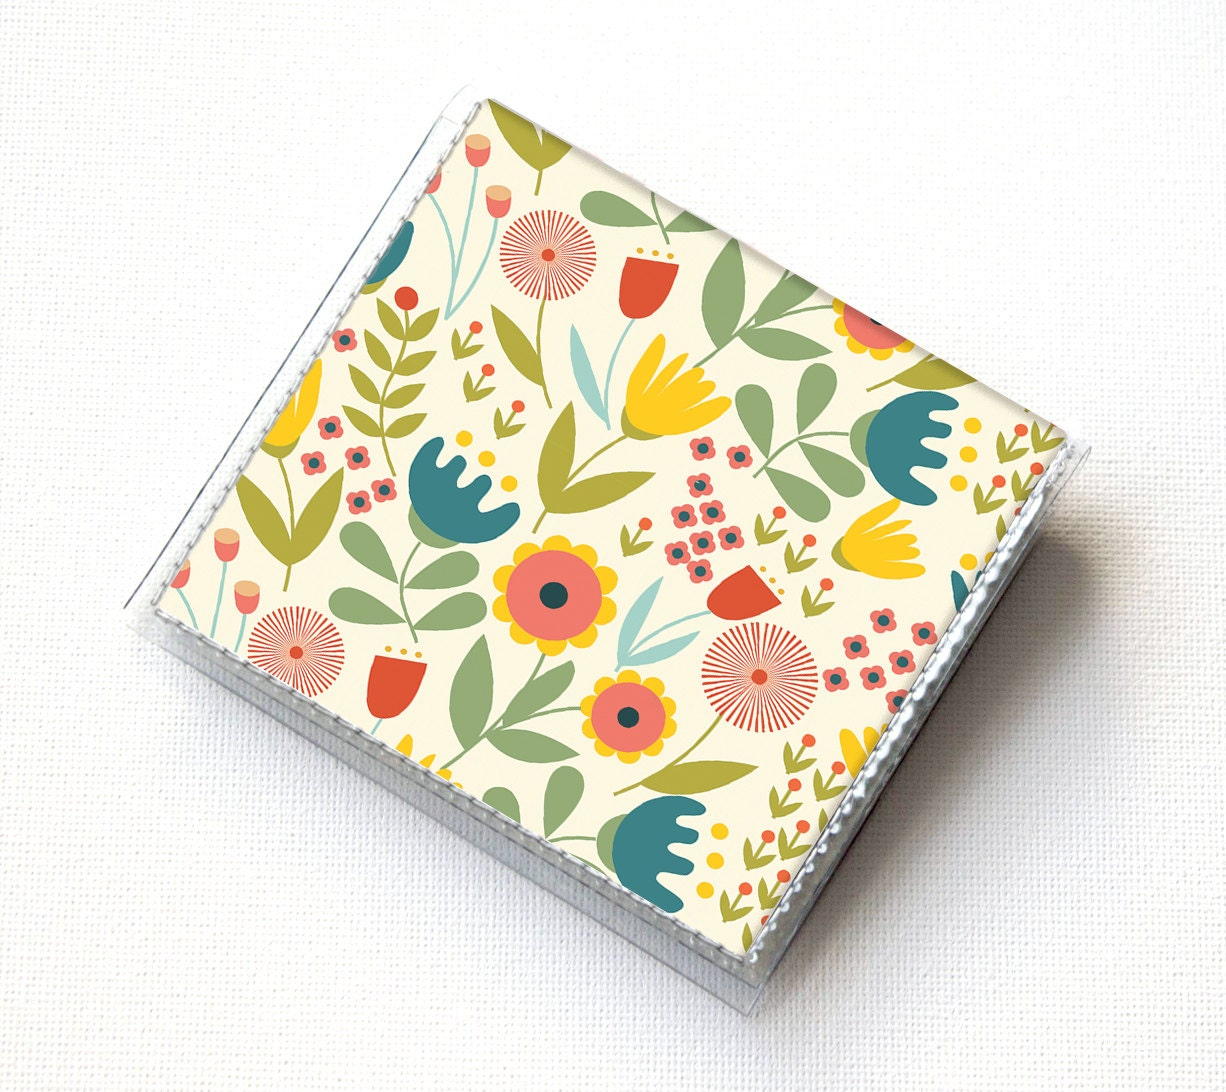 Vinyl moo square card holder scandinavian summer1 snap mini vinyl moo square card holder scandinavian summer1 snap mini card case moo case small square gift floral flowers pretty folk reheart Images